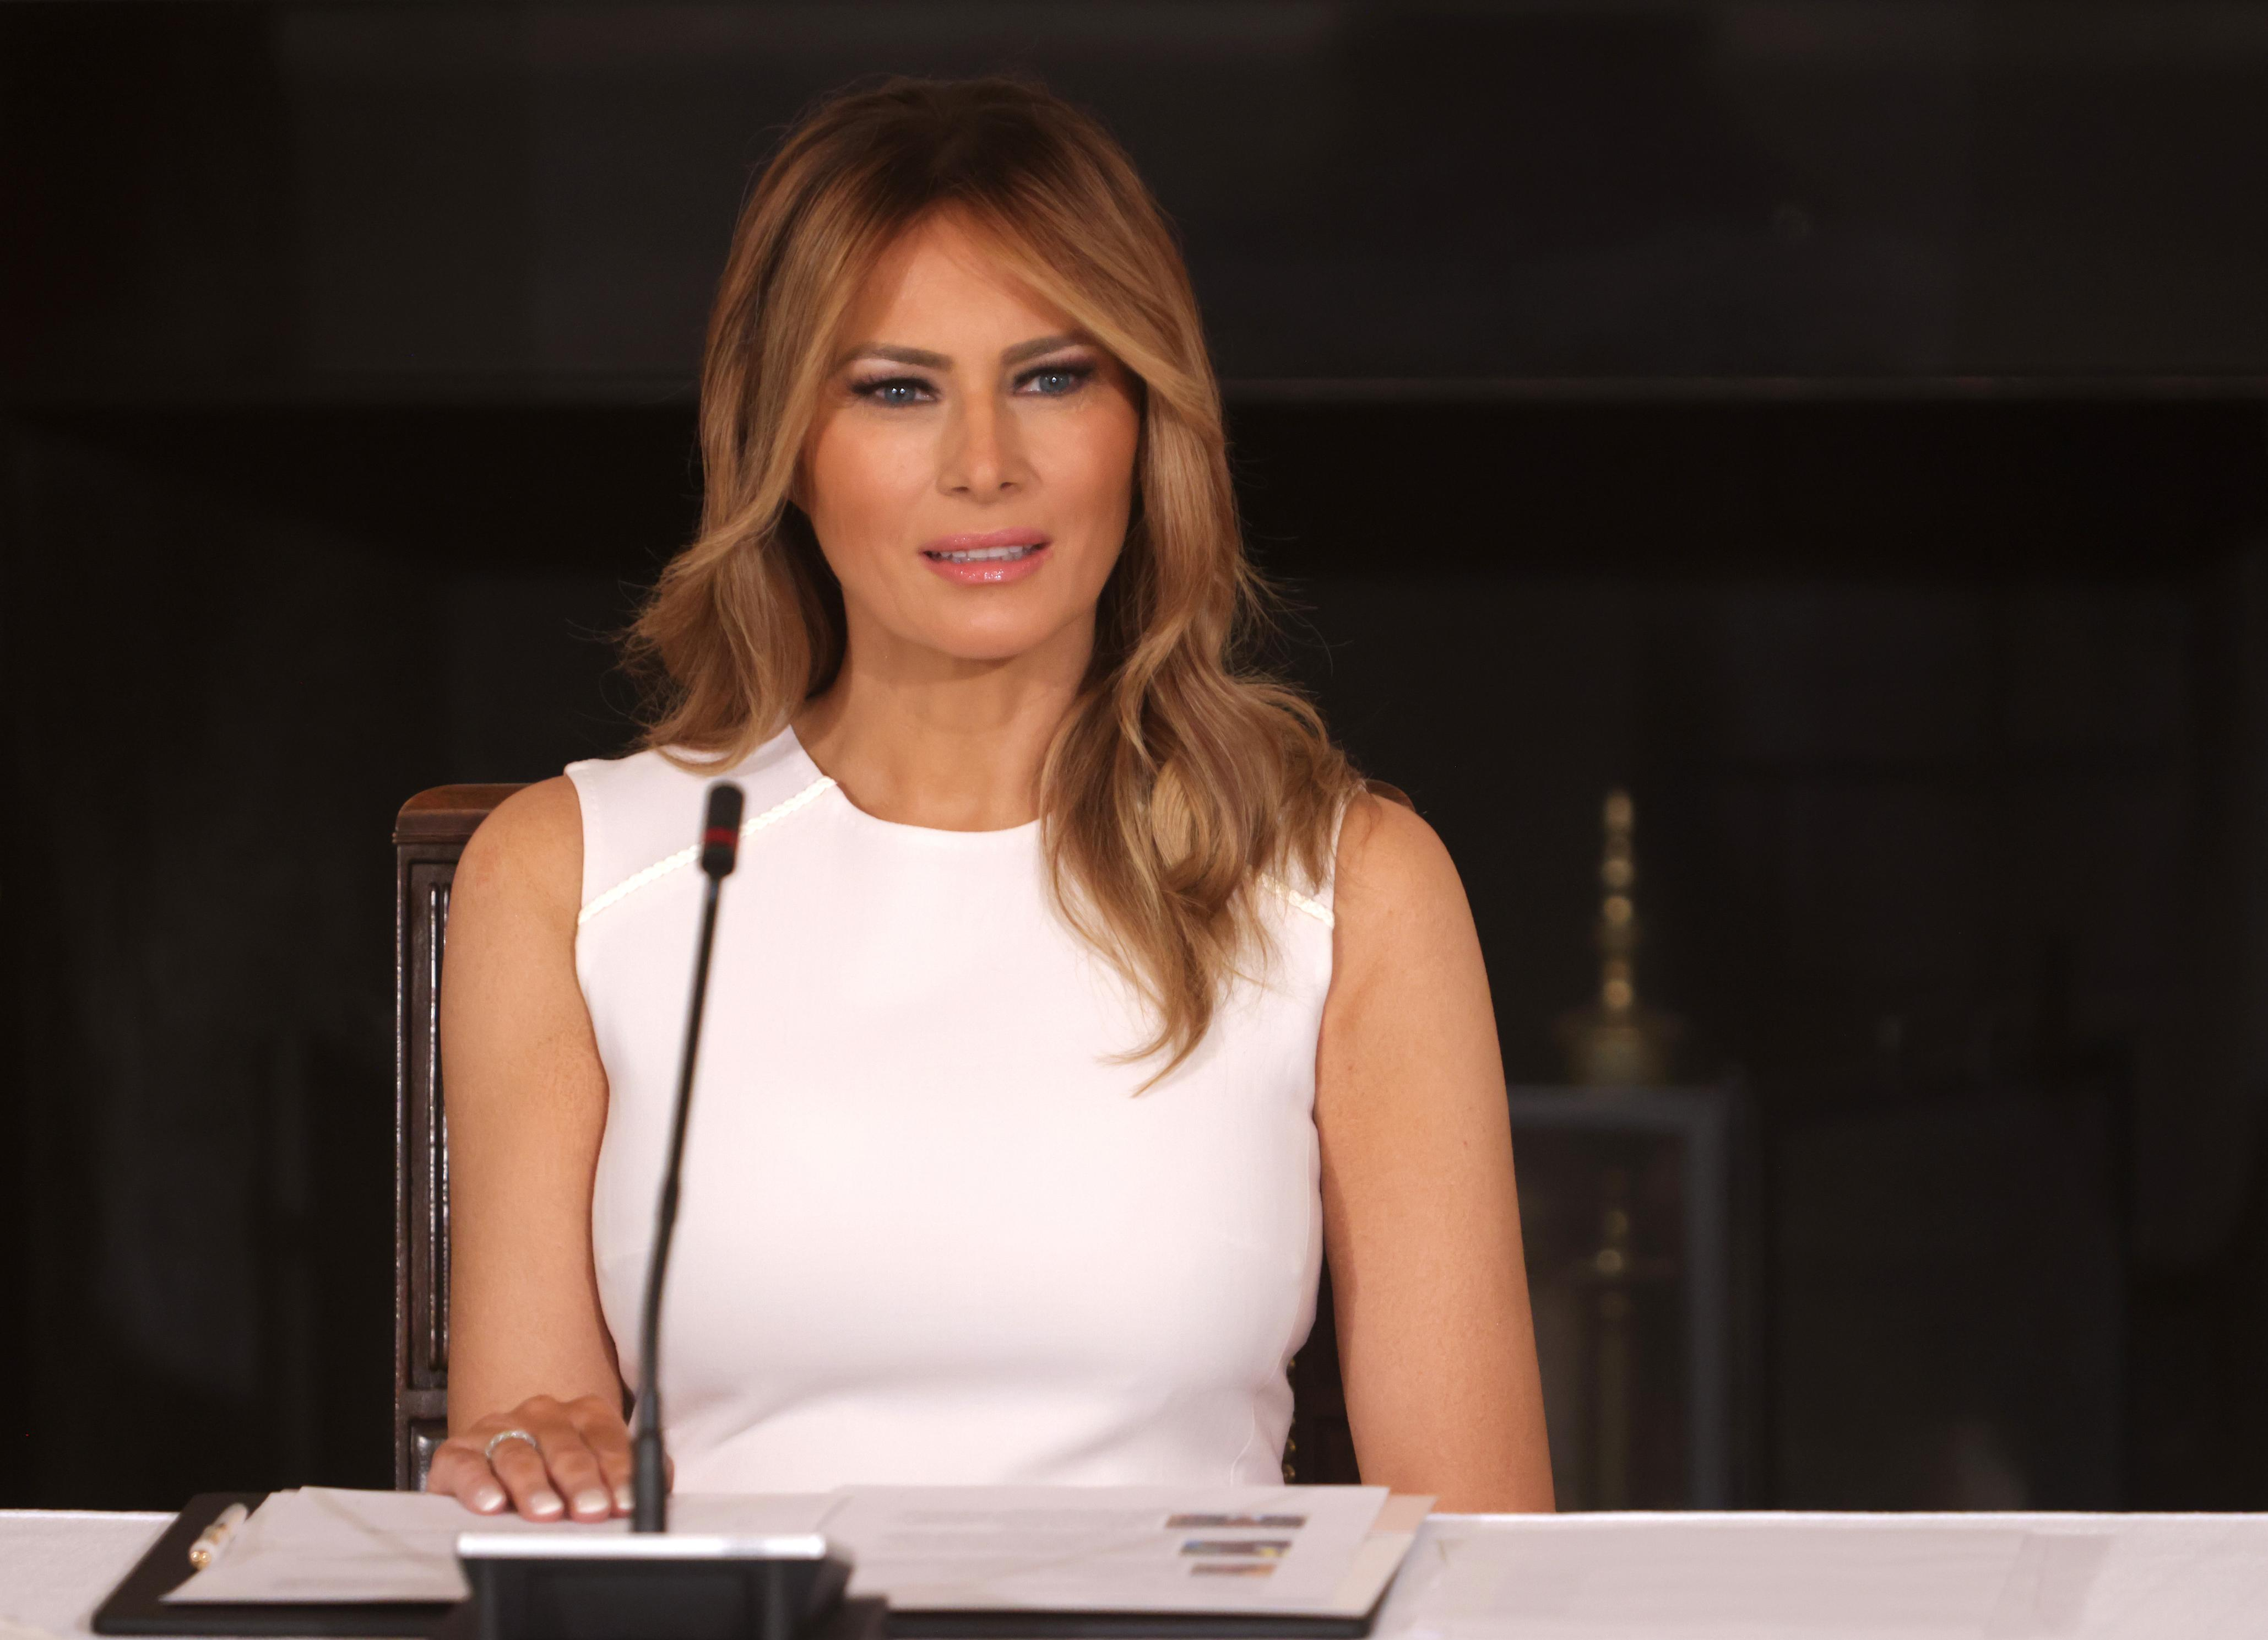 Melania Trump focuses on Covid and slams Democrats for politicizing pandemic in campaign speech